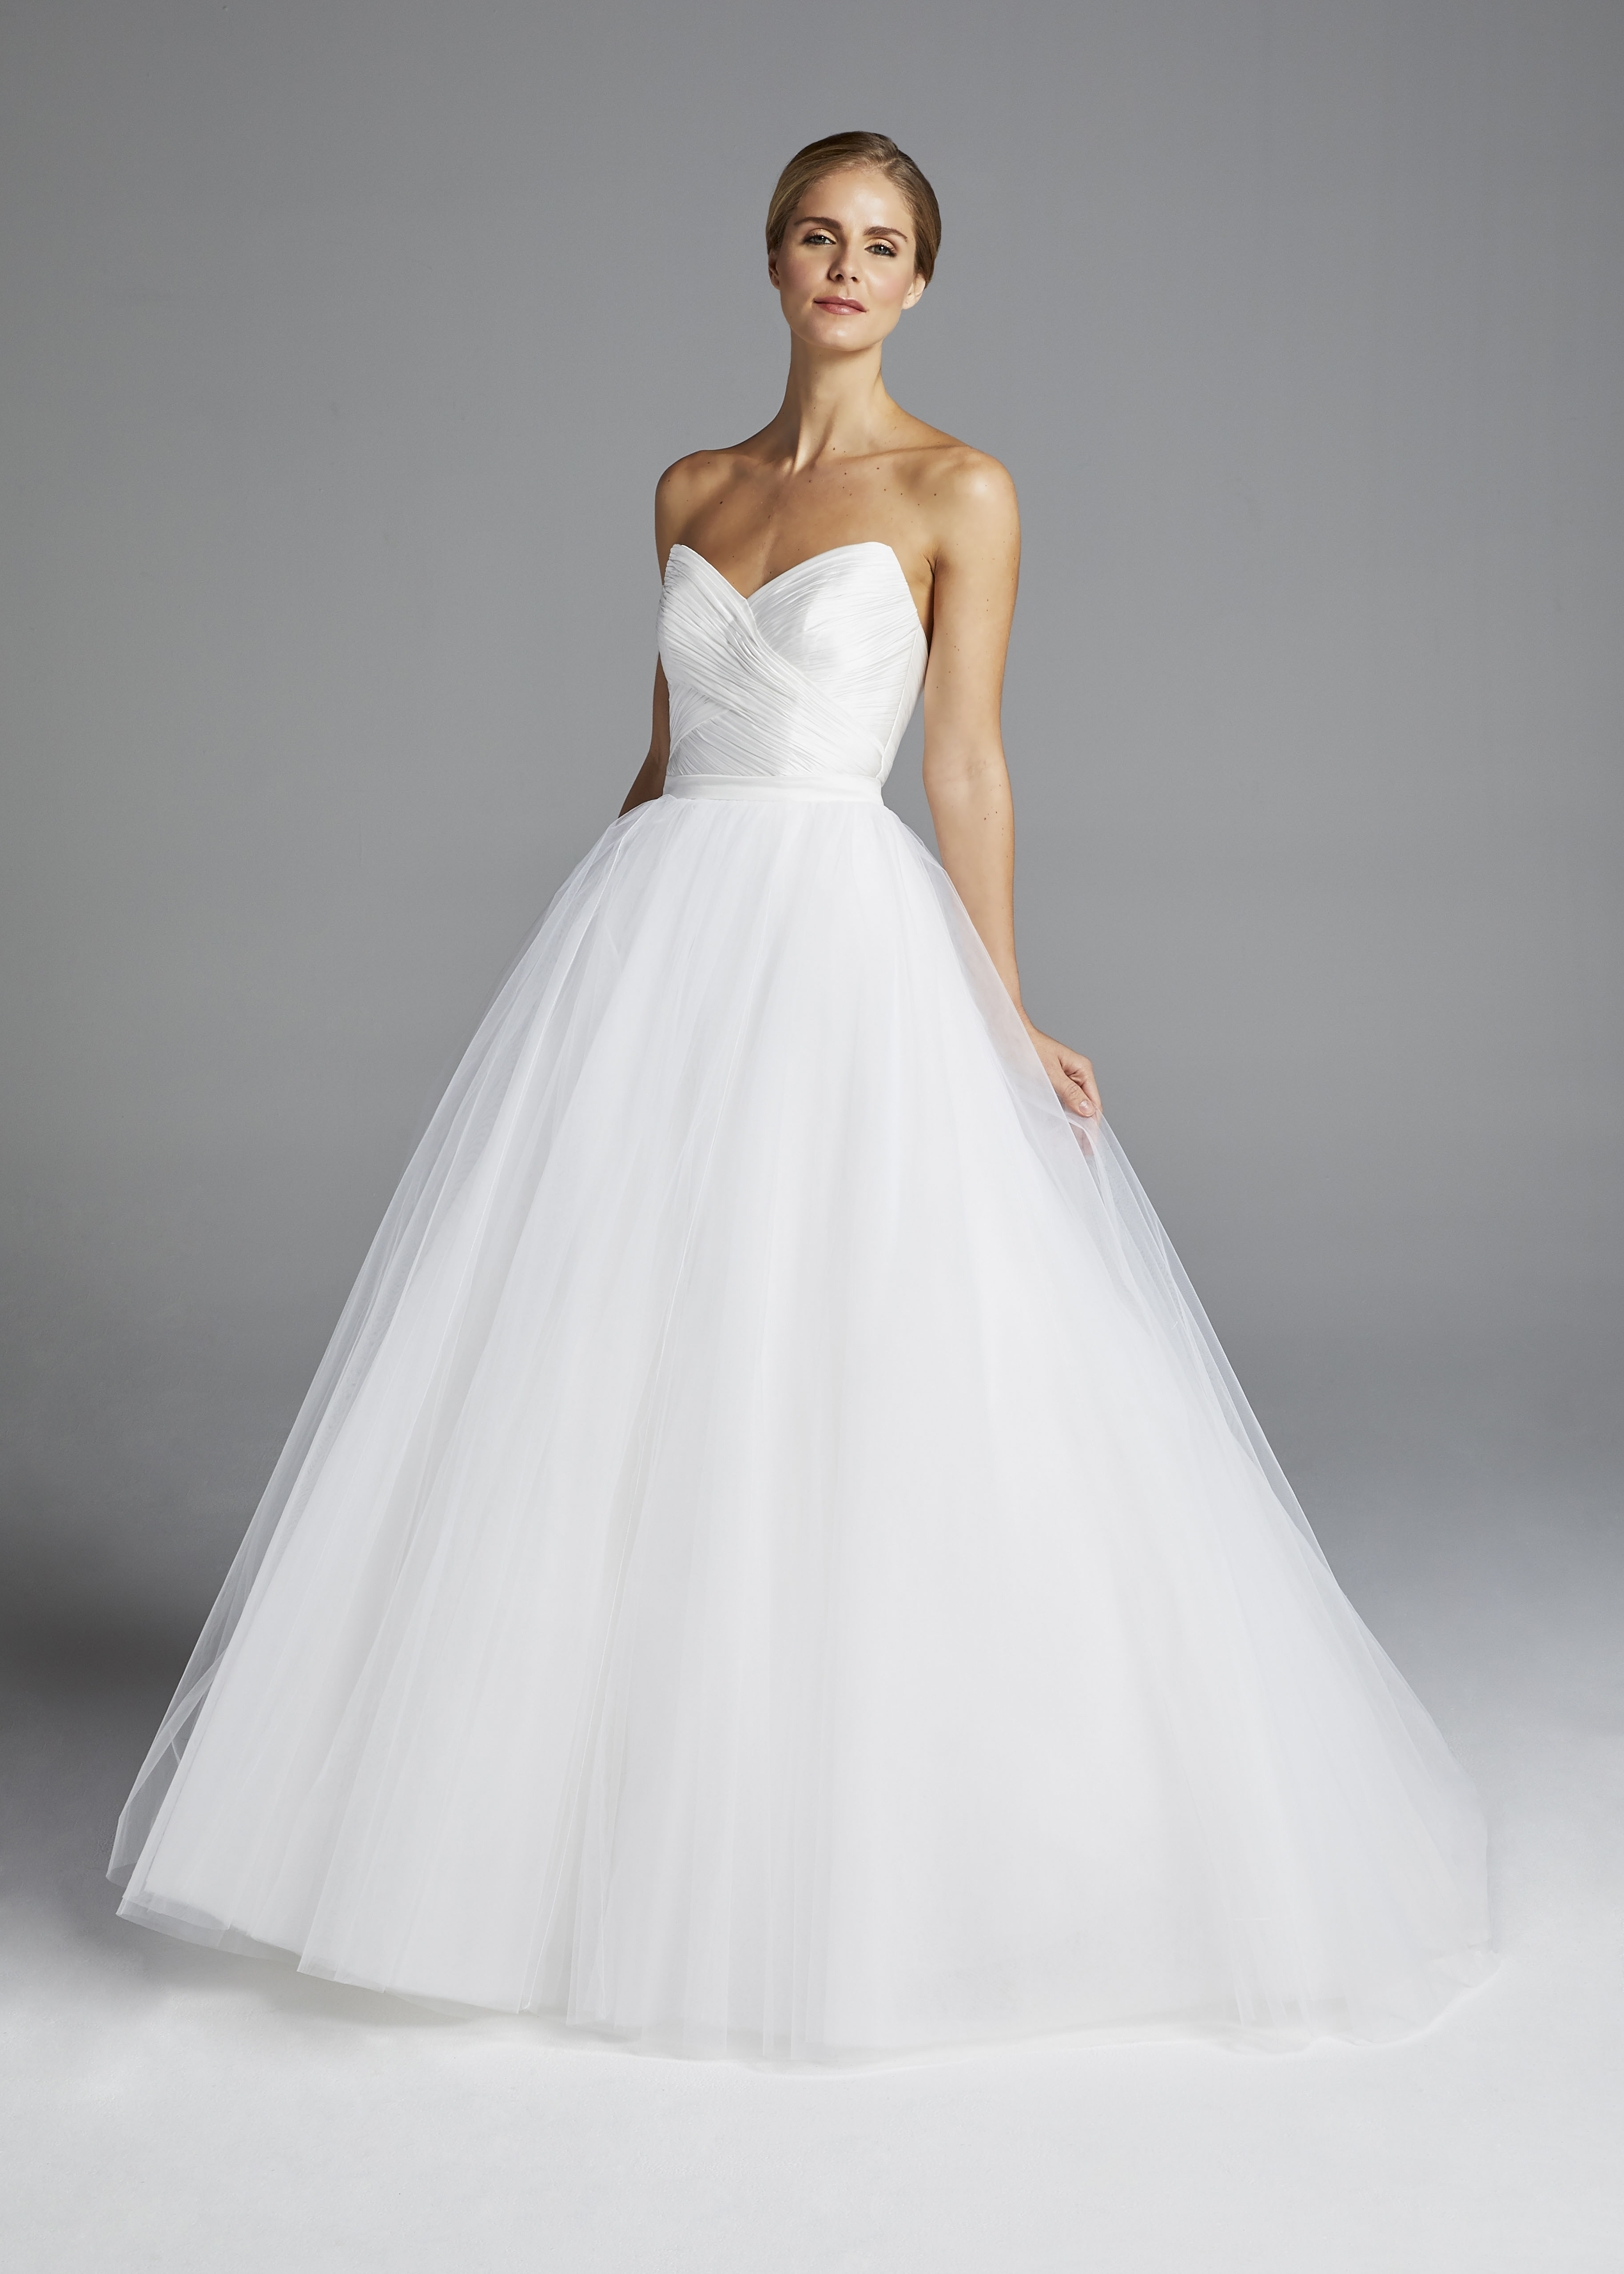 anne barge strapless sweetheart wedding dress spring 2019